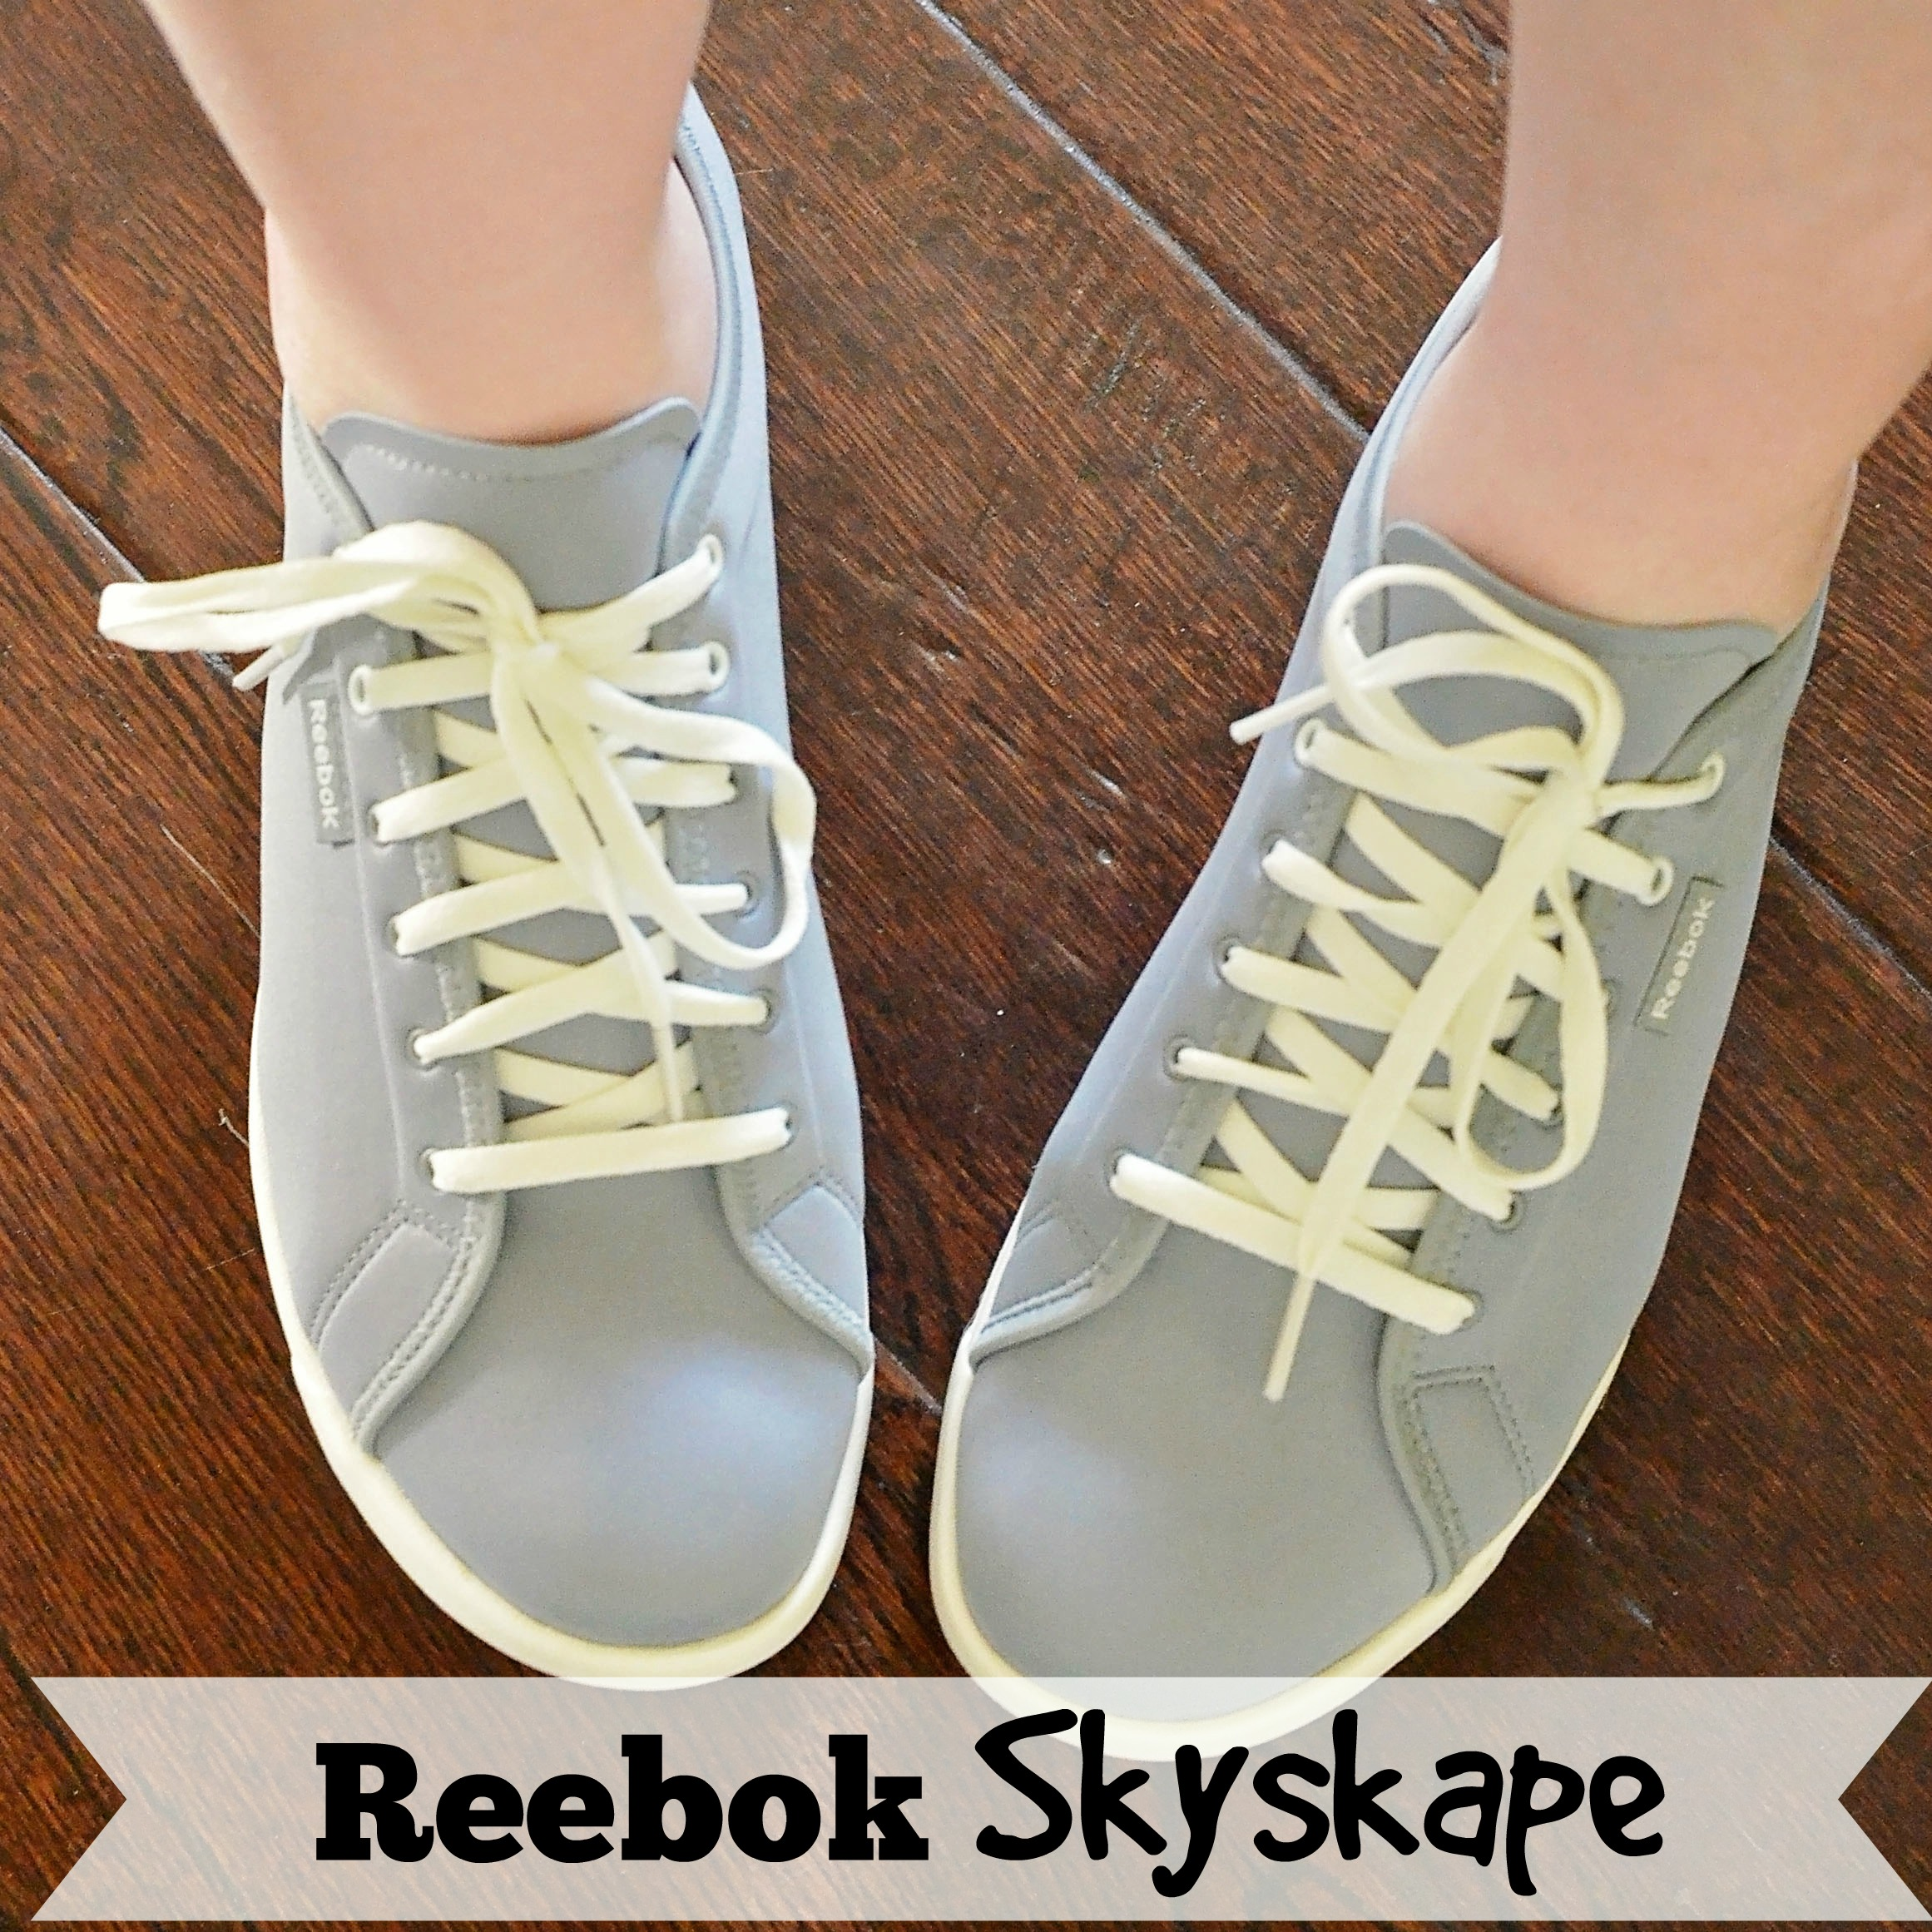 ade64680ee8da4 Reebok Skyscape  The Perfect Summer Shoe